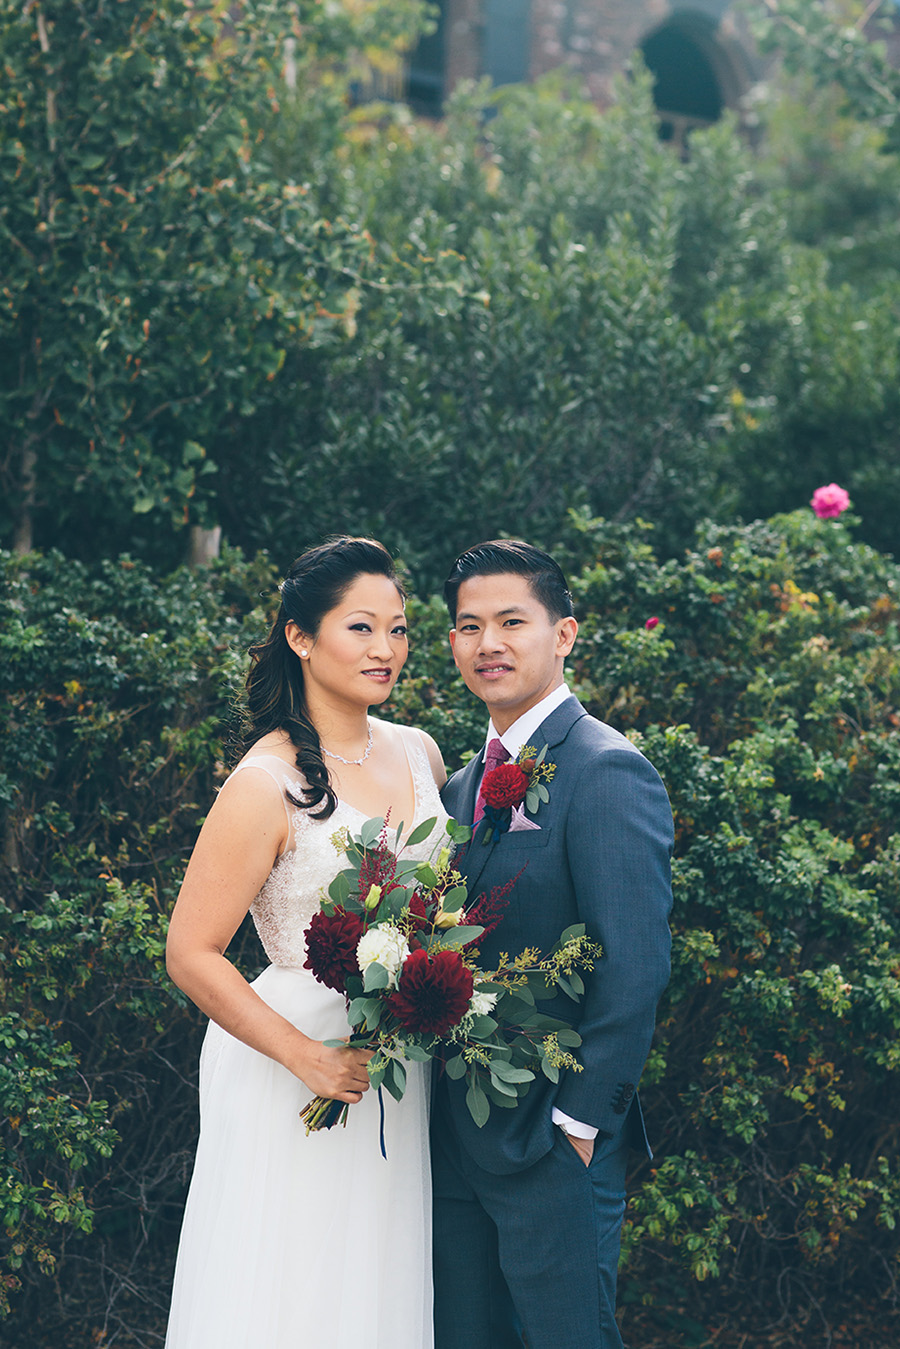 CHRISTINA-BRANDON-BROOKLYN-WEDDING-BRIDEGROOM-CYNTHIACHUNG-0095.jpg